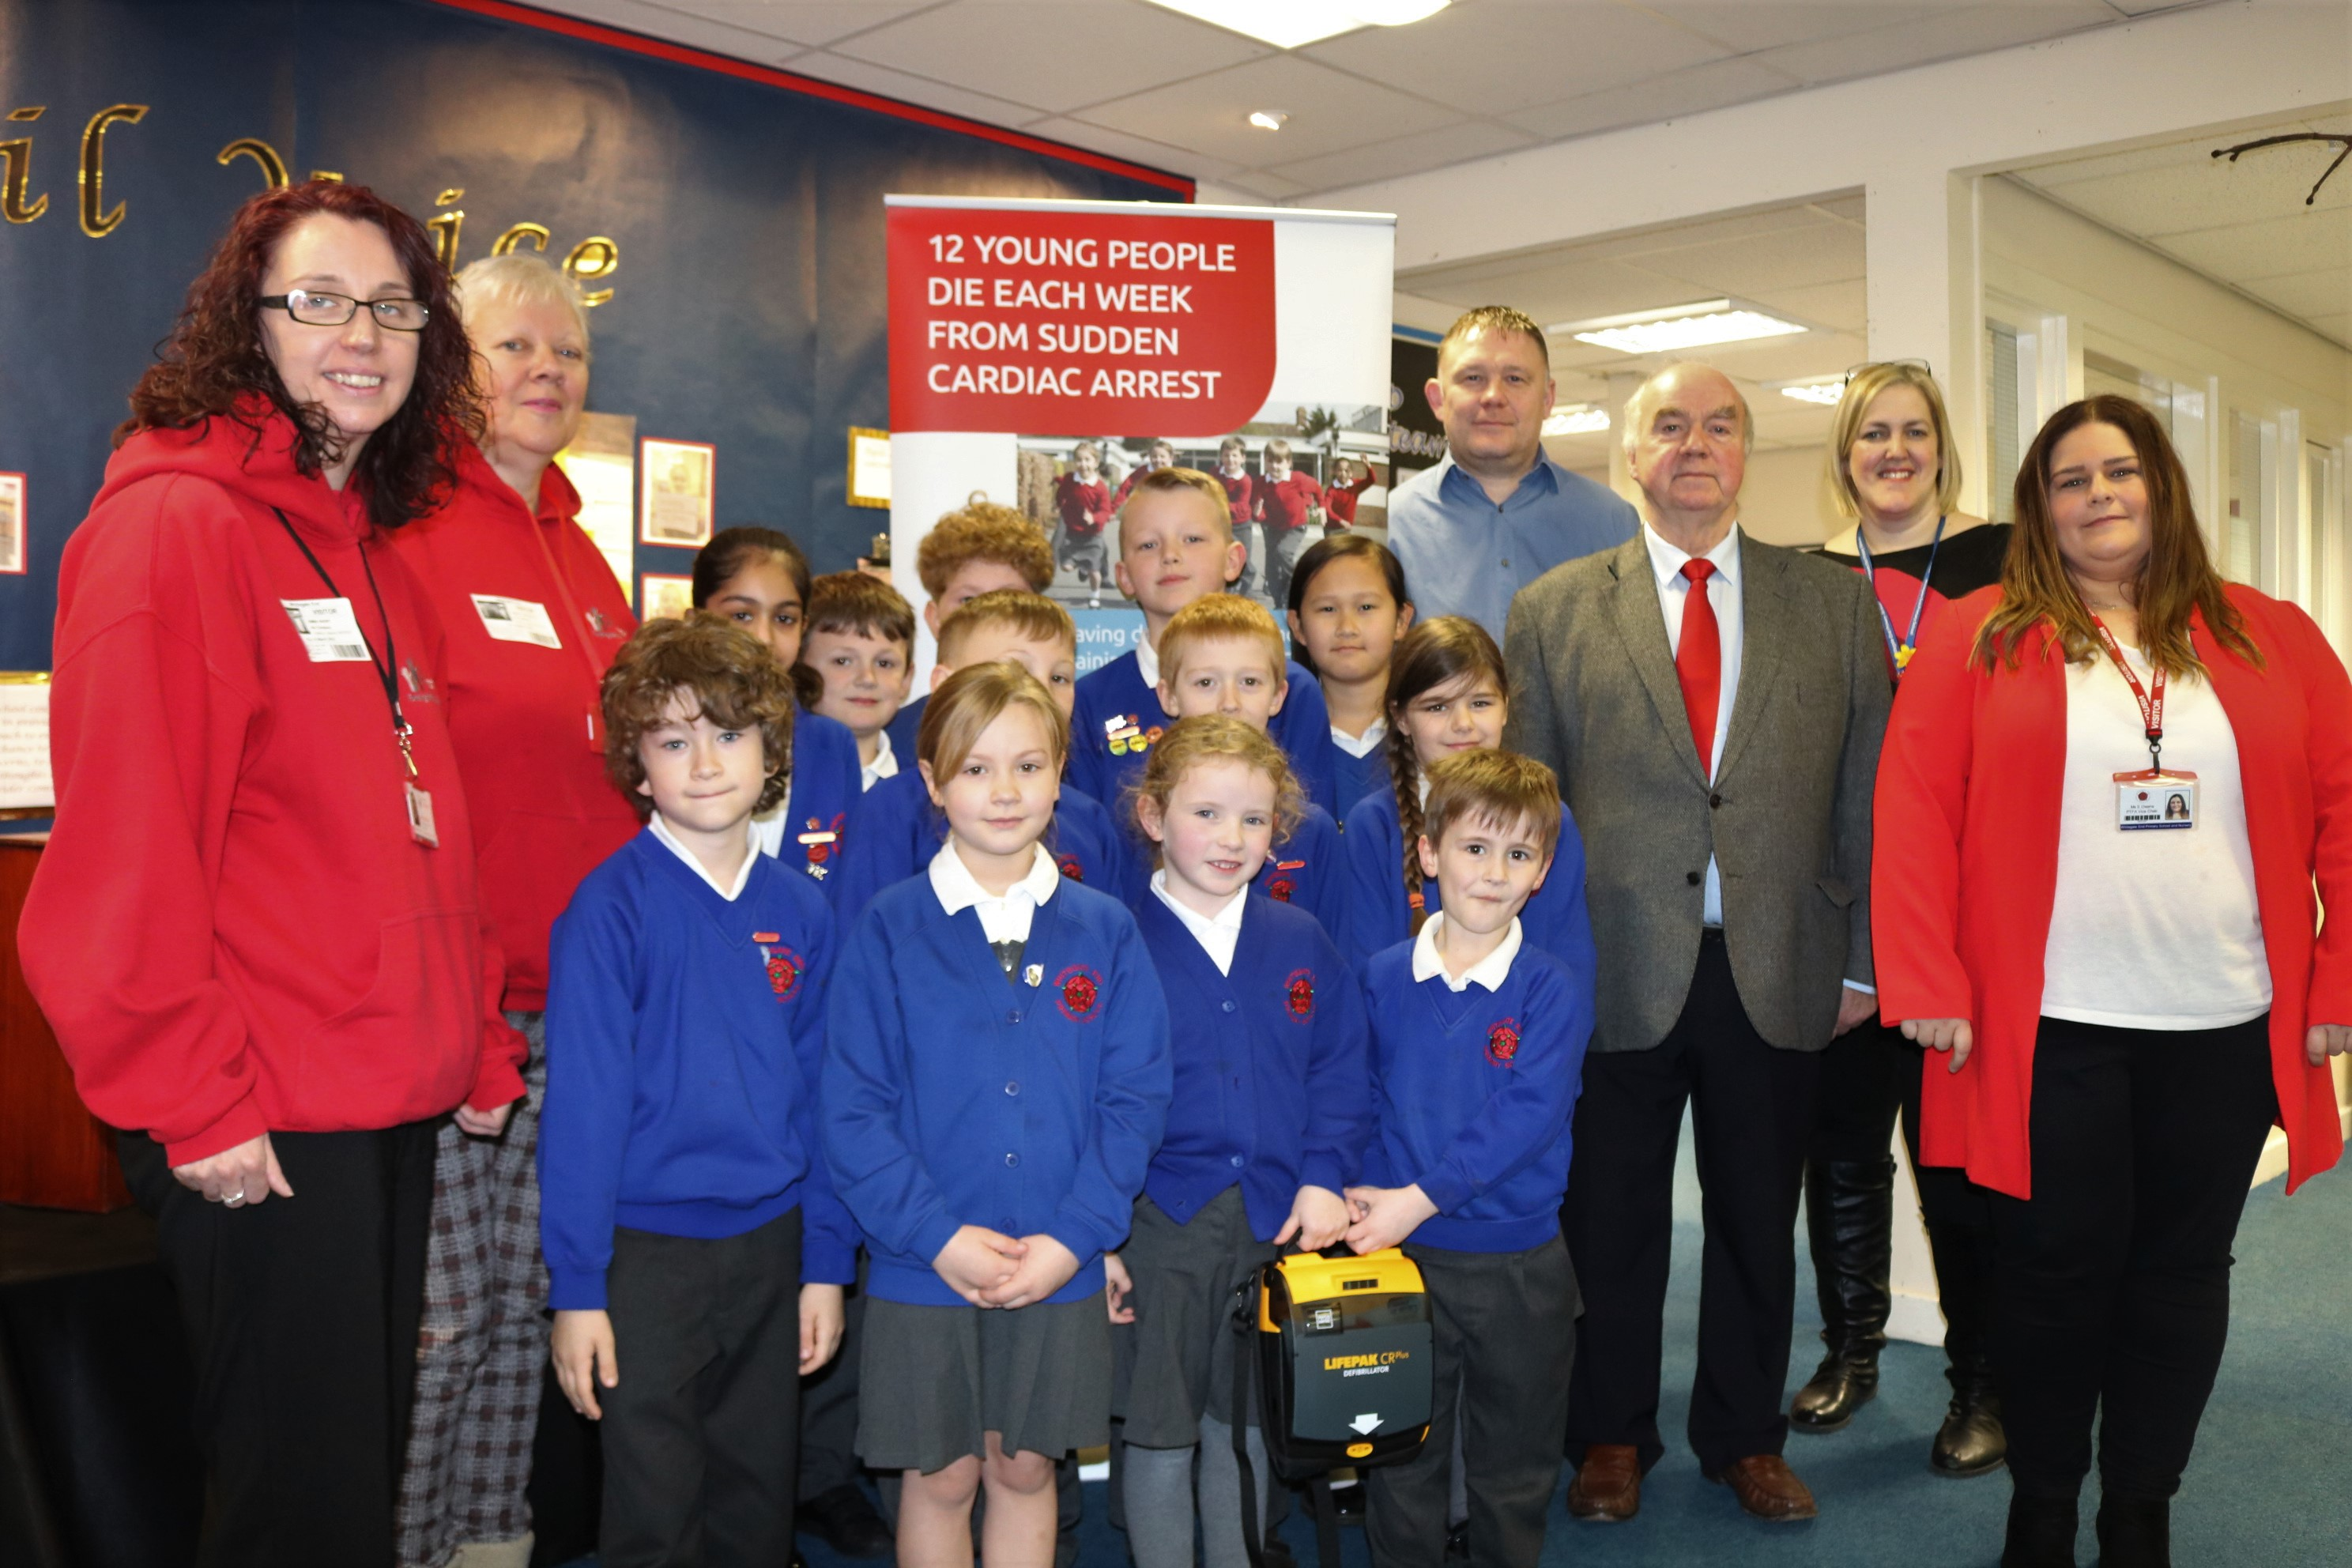 Primary schools in Chadderton have been kitted out with potentially life-saving defibrillators.